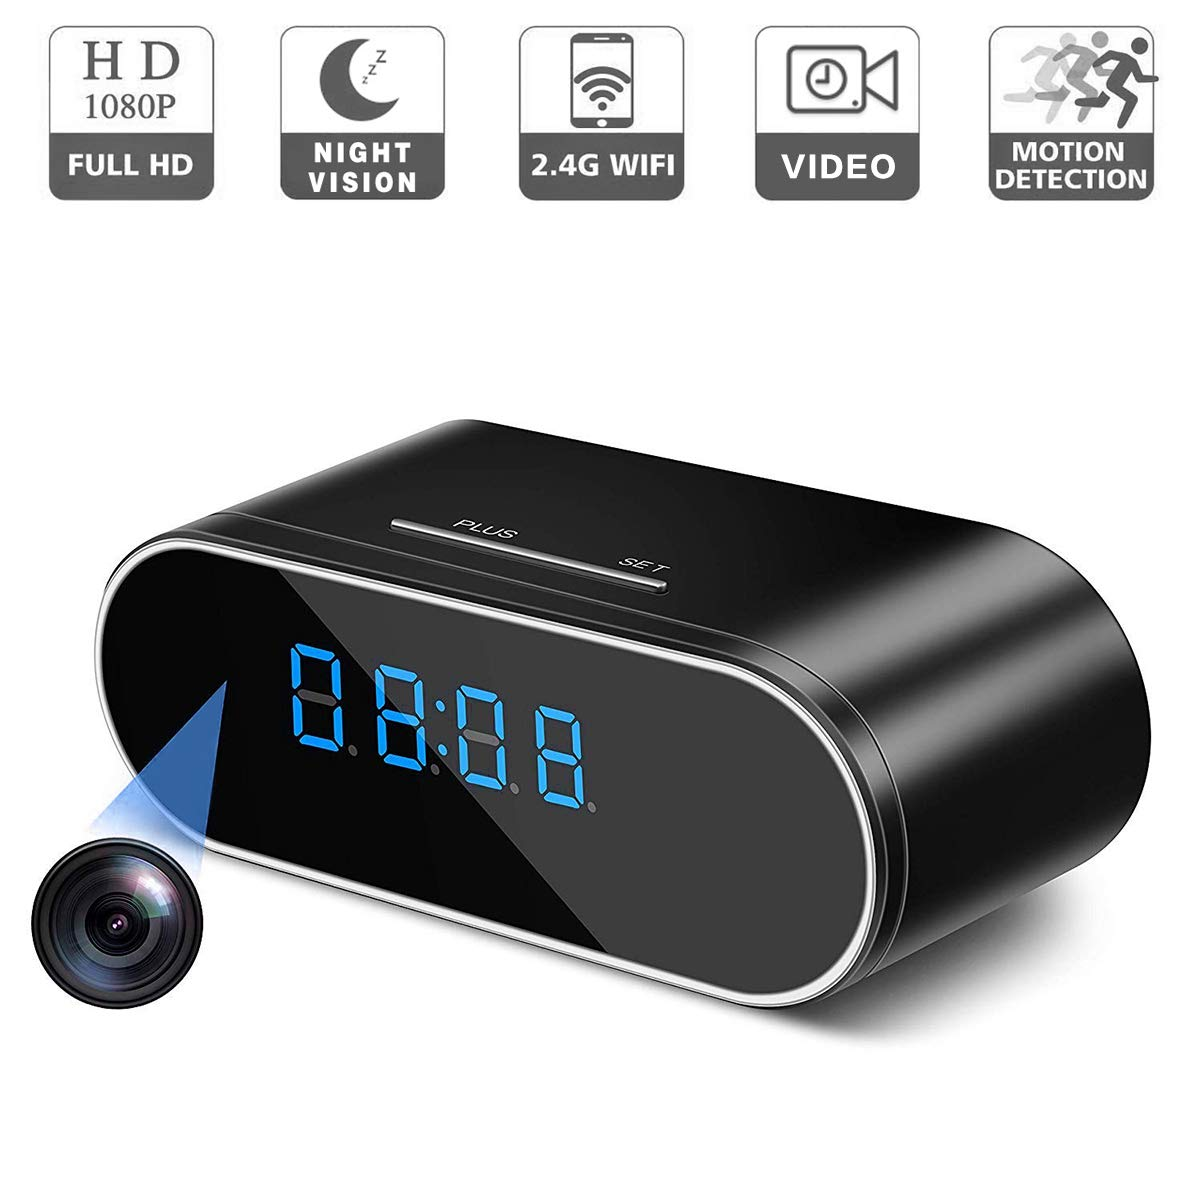 RZATU - Hidden Camera Alarm Clock - Spy Camera Wireless - Nanny Camera WiFi - Mini Home Security Monitoring Cam with Cell Phone iPhone Android App - 1080P HD - Night Vision Motion Detection by RZATU